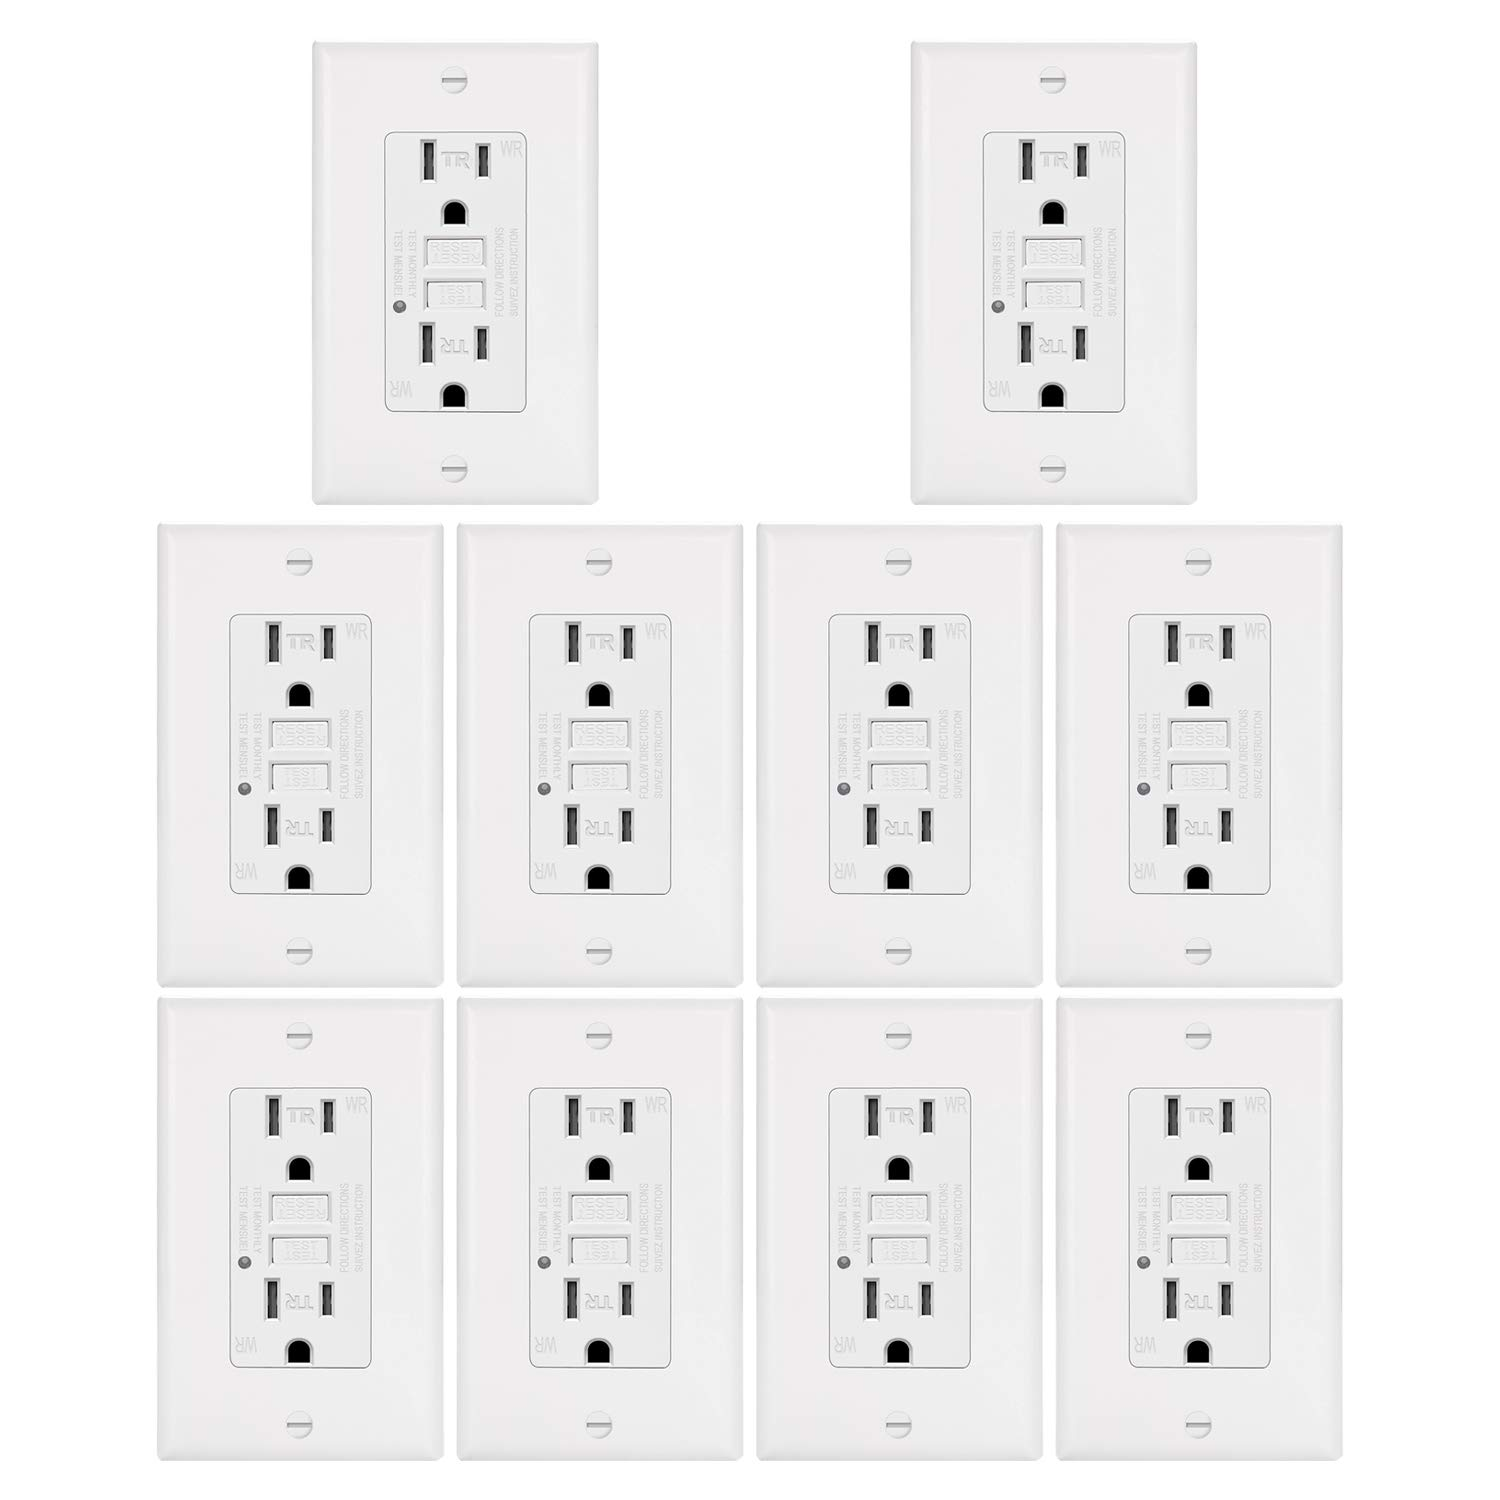 10 Pack - ELECTECK Weather Resistant GFCI Outlet, Ground Fault Circuit Interrupter with LED Indicator, 15-Amp Tamper Resistant Receptacle, Decorator Wall Plate Included, ETL Certified, White by ELECTECK